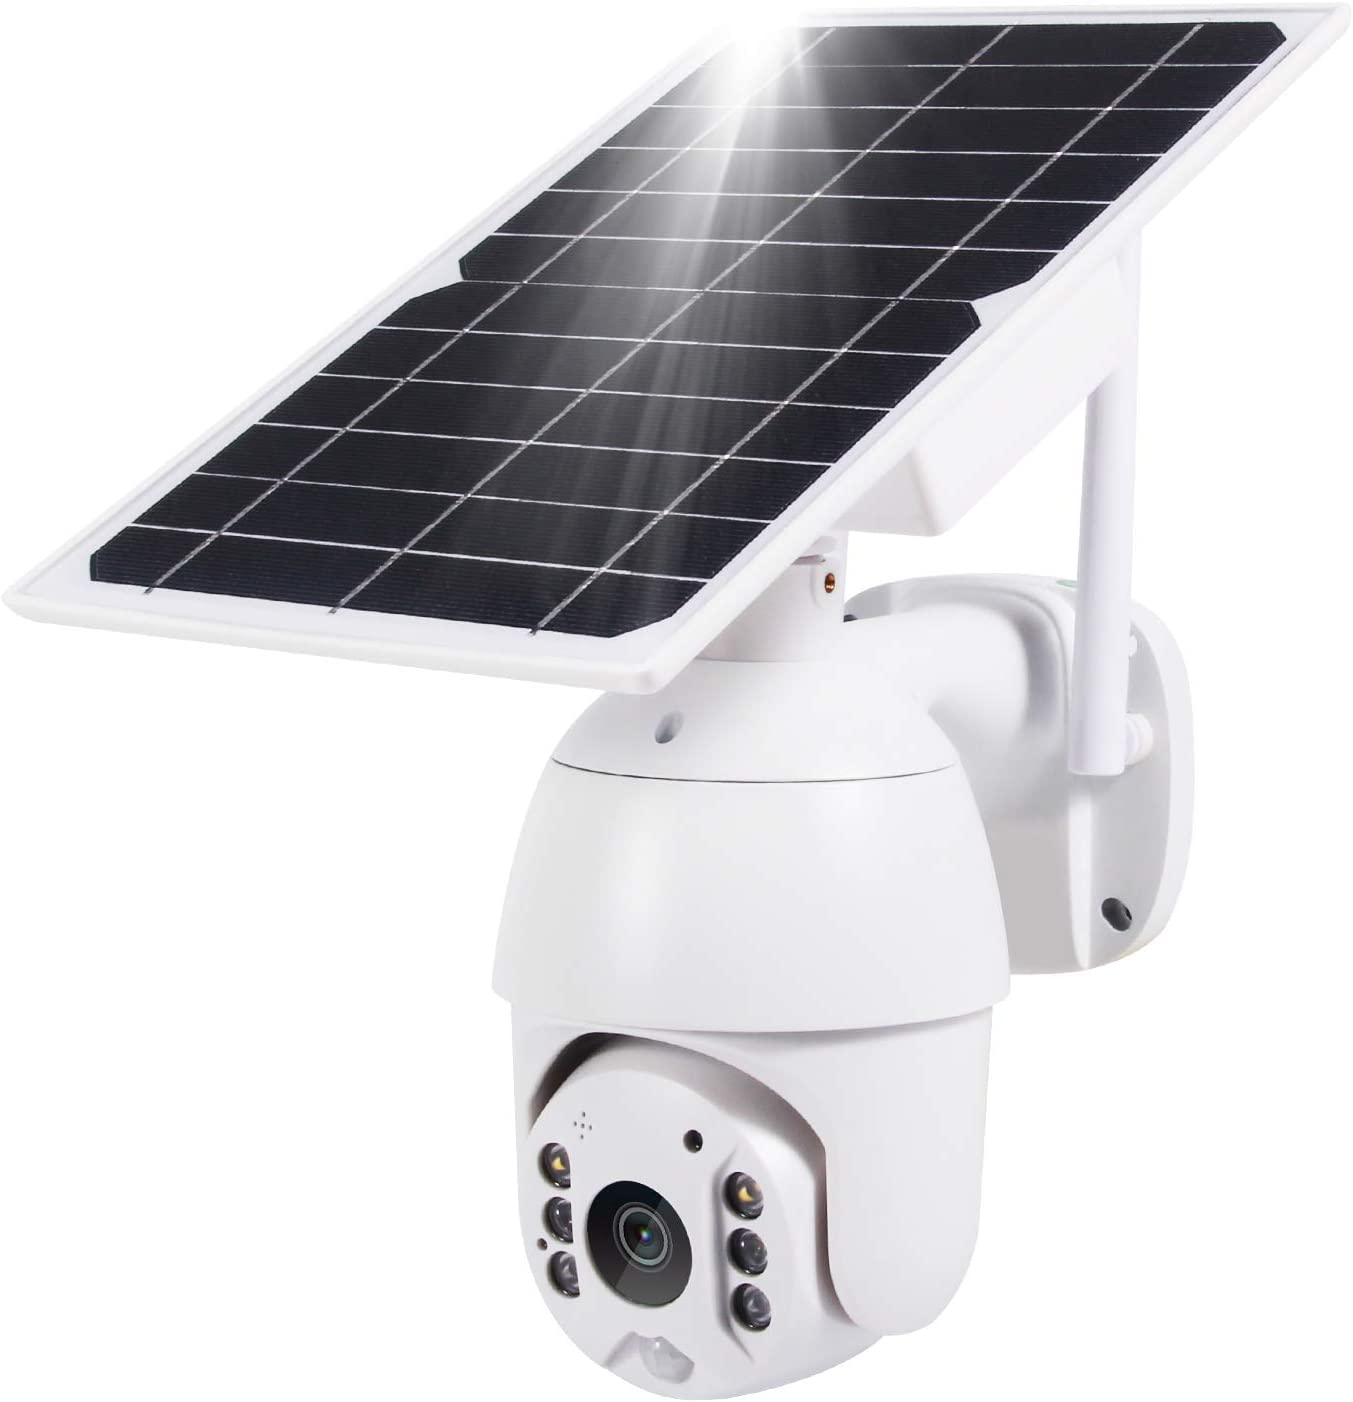 Solar Security Camera Outdoor,Yeoman 1080P Wireless Wi-Fi Spotlight Home Surveillance with Pan Tilt &Rechargeable Battery,Two-Way Talk,PIR Motion Recording,Cloud Storage/SD Slot